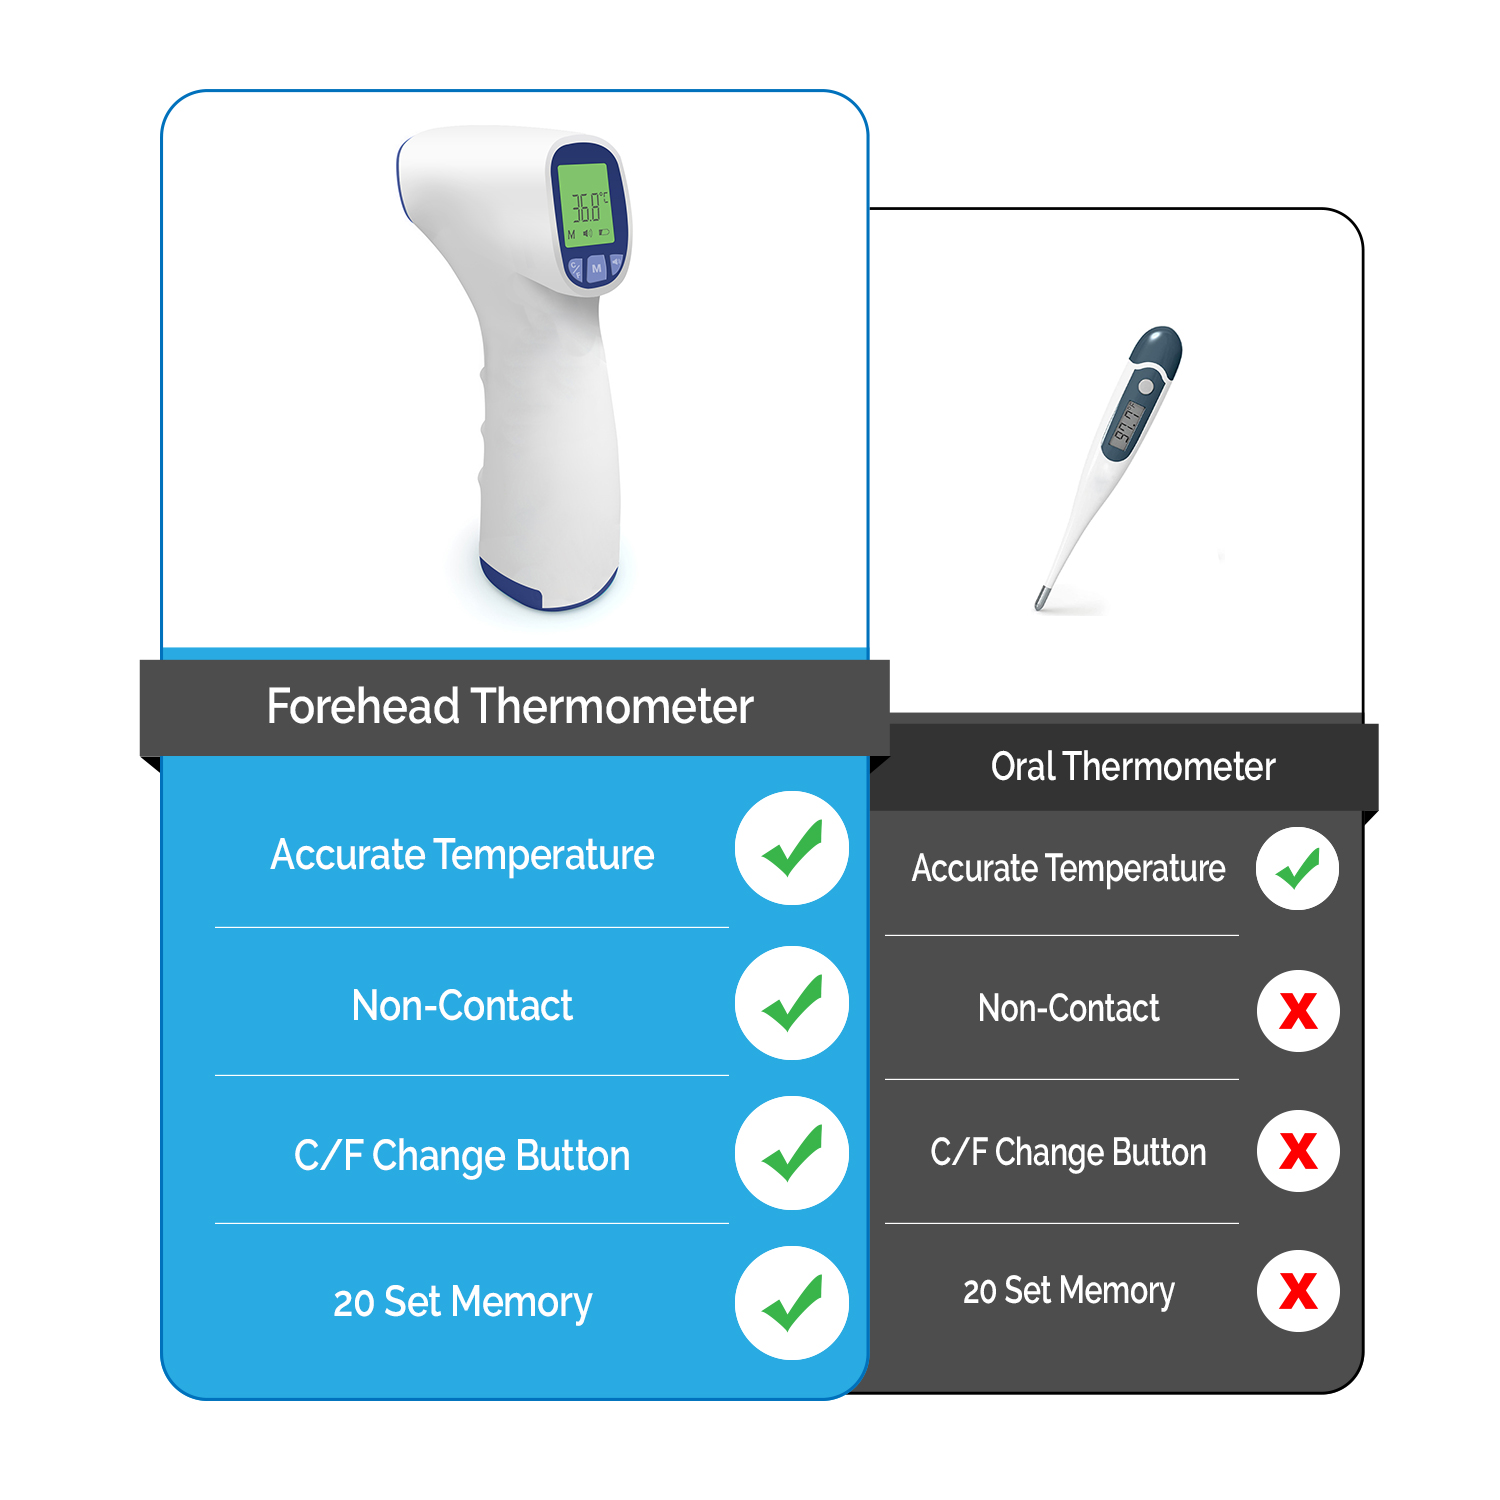 Forehead Thermometer - Digital Medical Non Contact Infrared Temperature Device - for Adults, Children, Baby, Fever Detector. Instant Readings in °C / °F